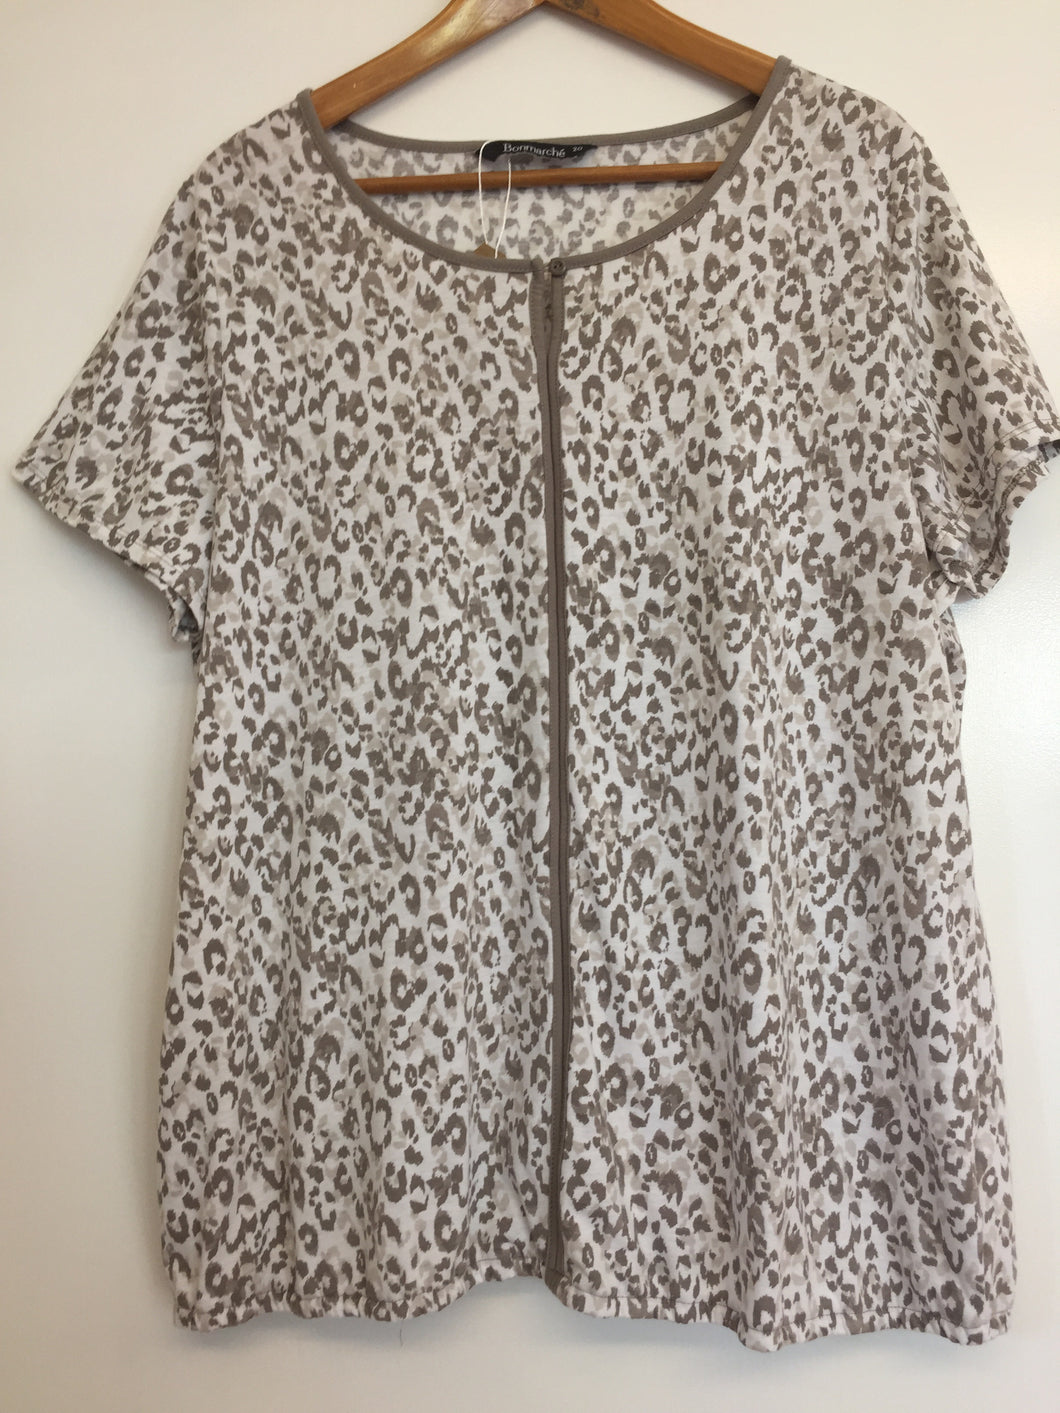 Bon Marche Animal Print T-shirt Size 20